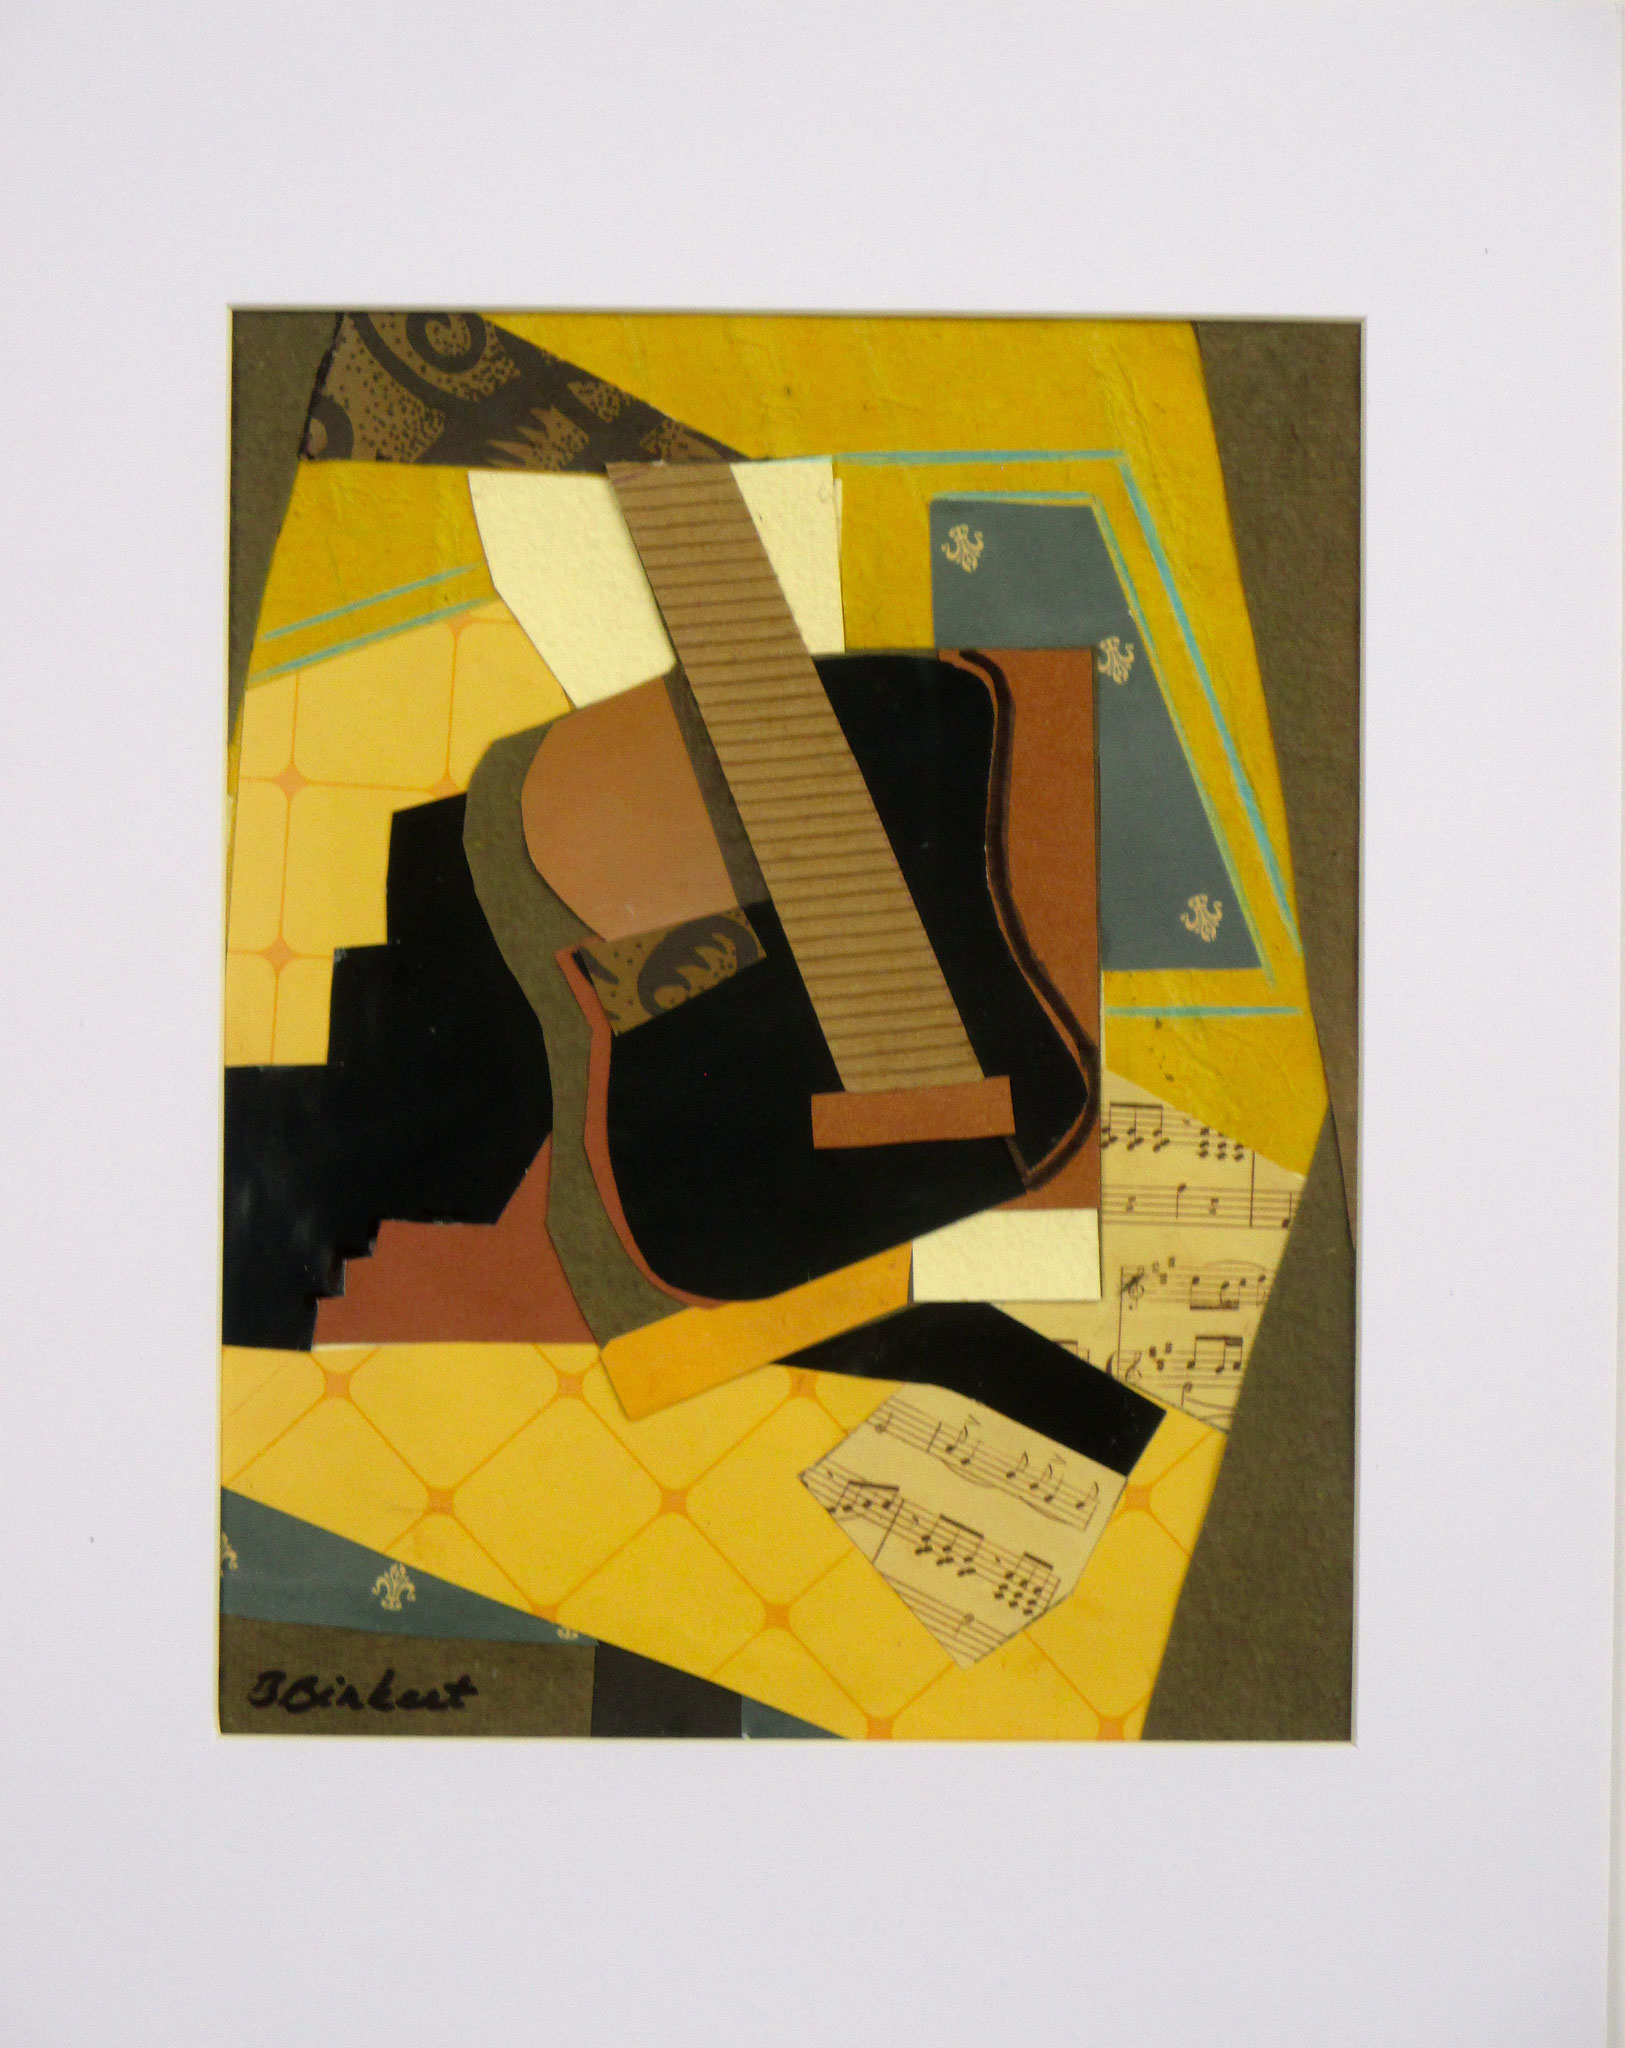 Lonely Guitar, collage on paper, 11 x 14, matted, 2017